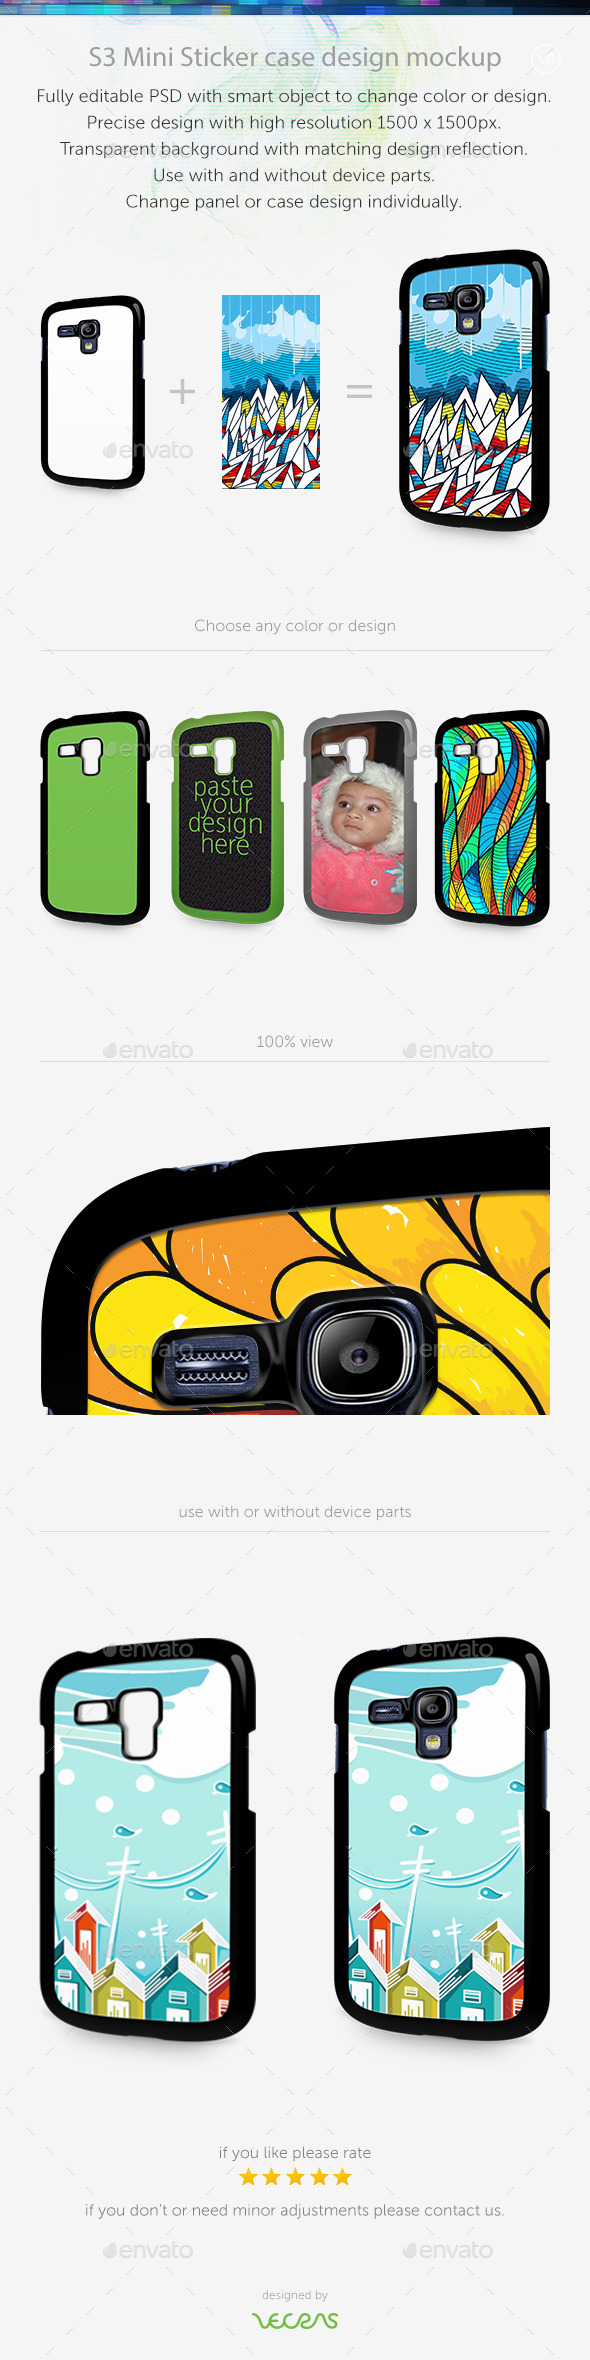 GraphicRiver S3 Mini Sticker Case Design Mockup 10449370